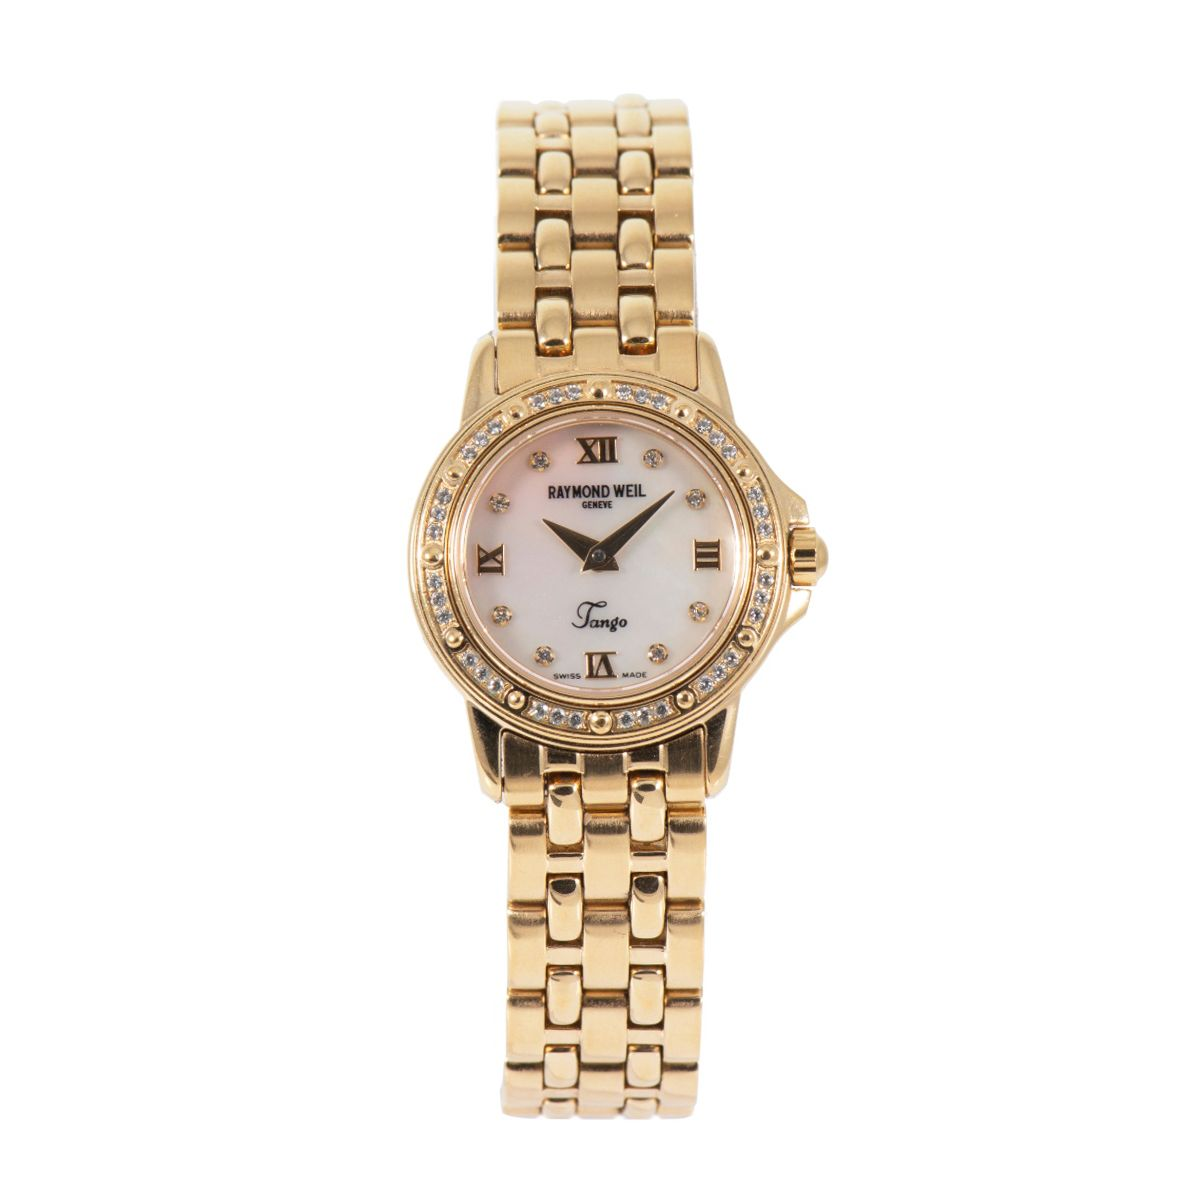 Raymond Weil Tango 5860 - 23mm Other Ladies Watch